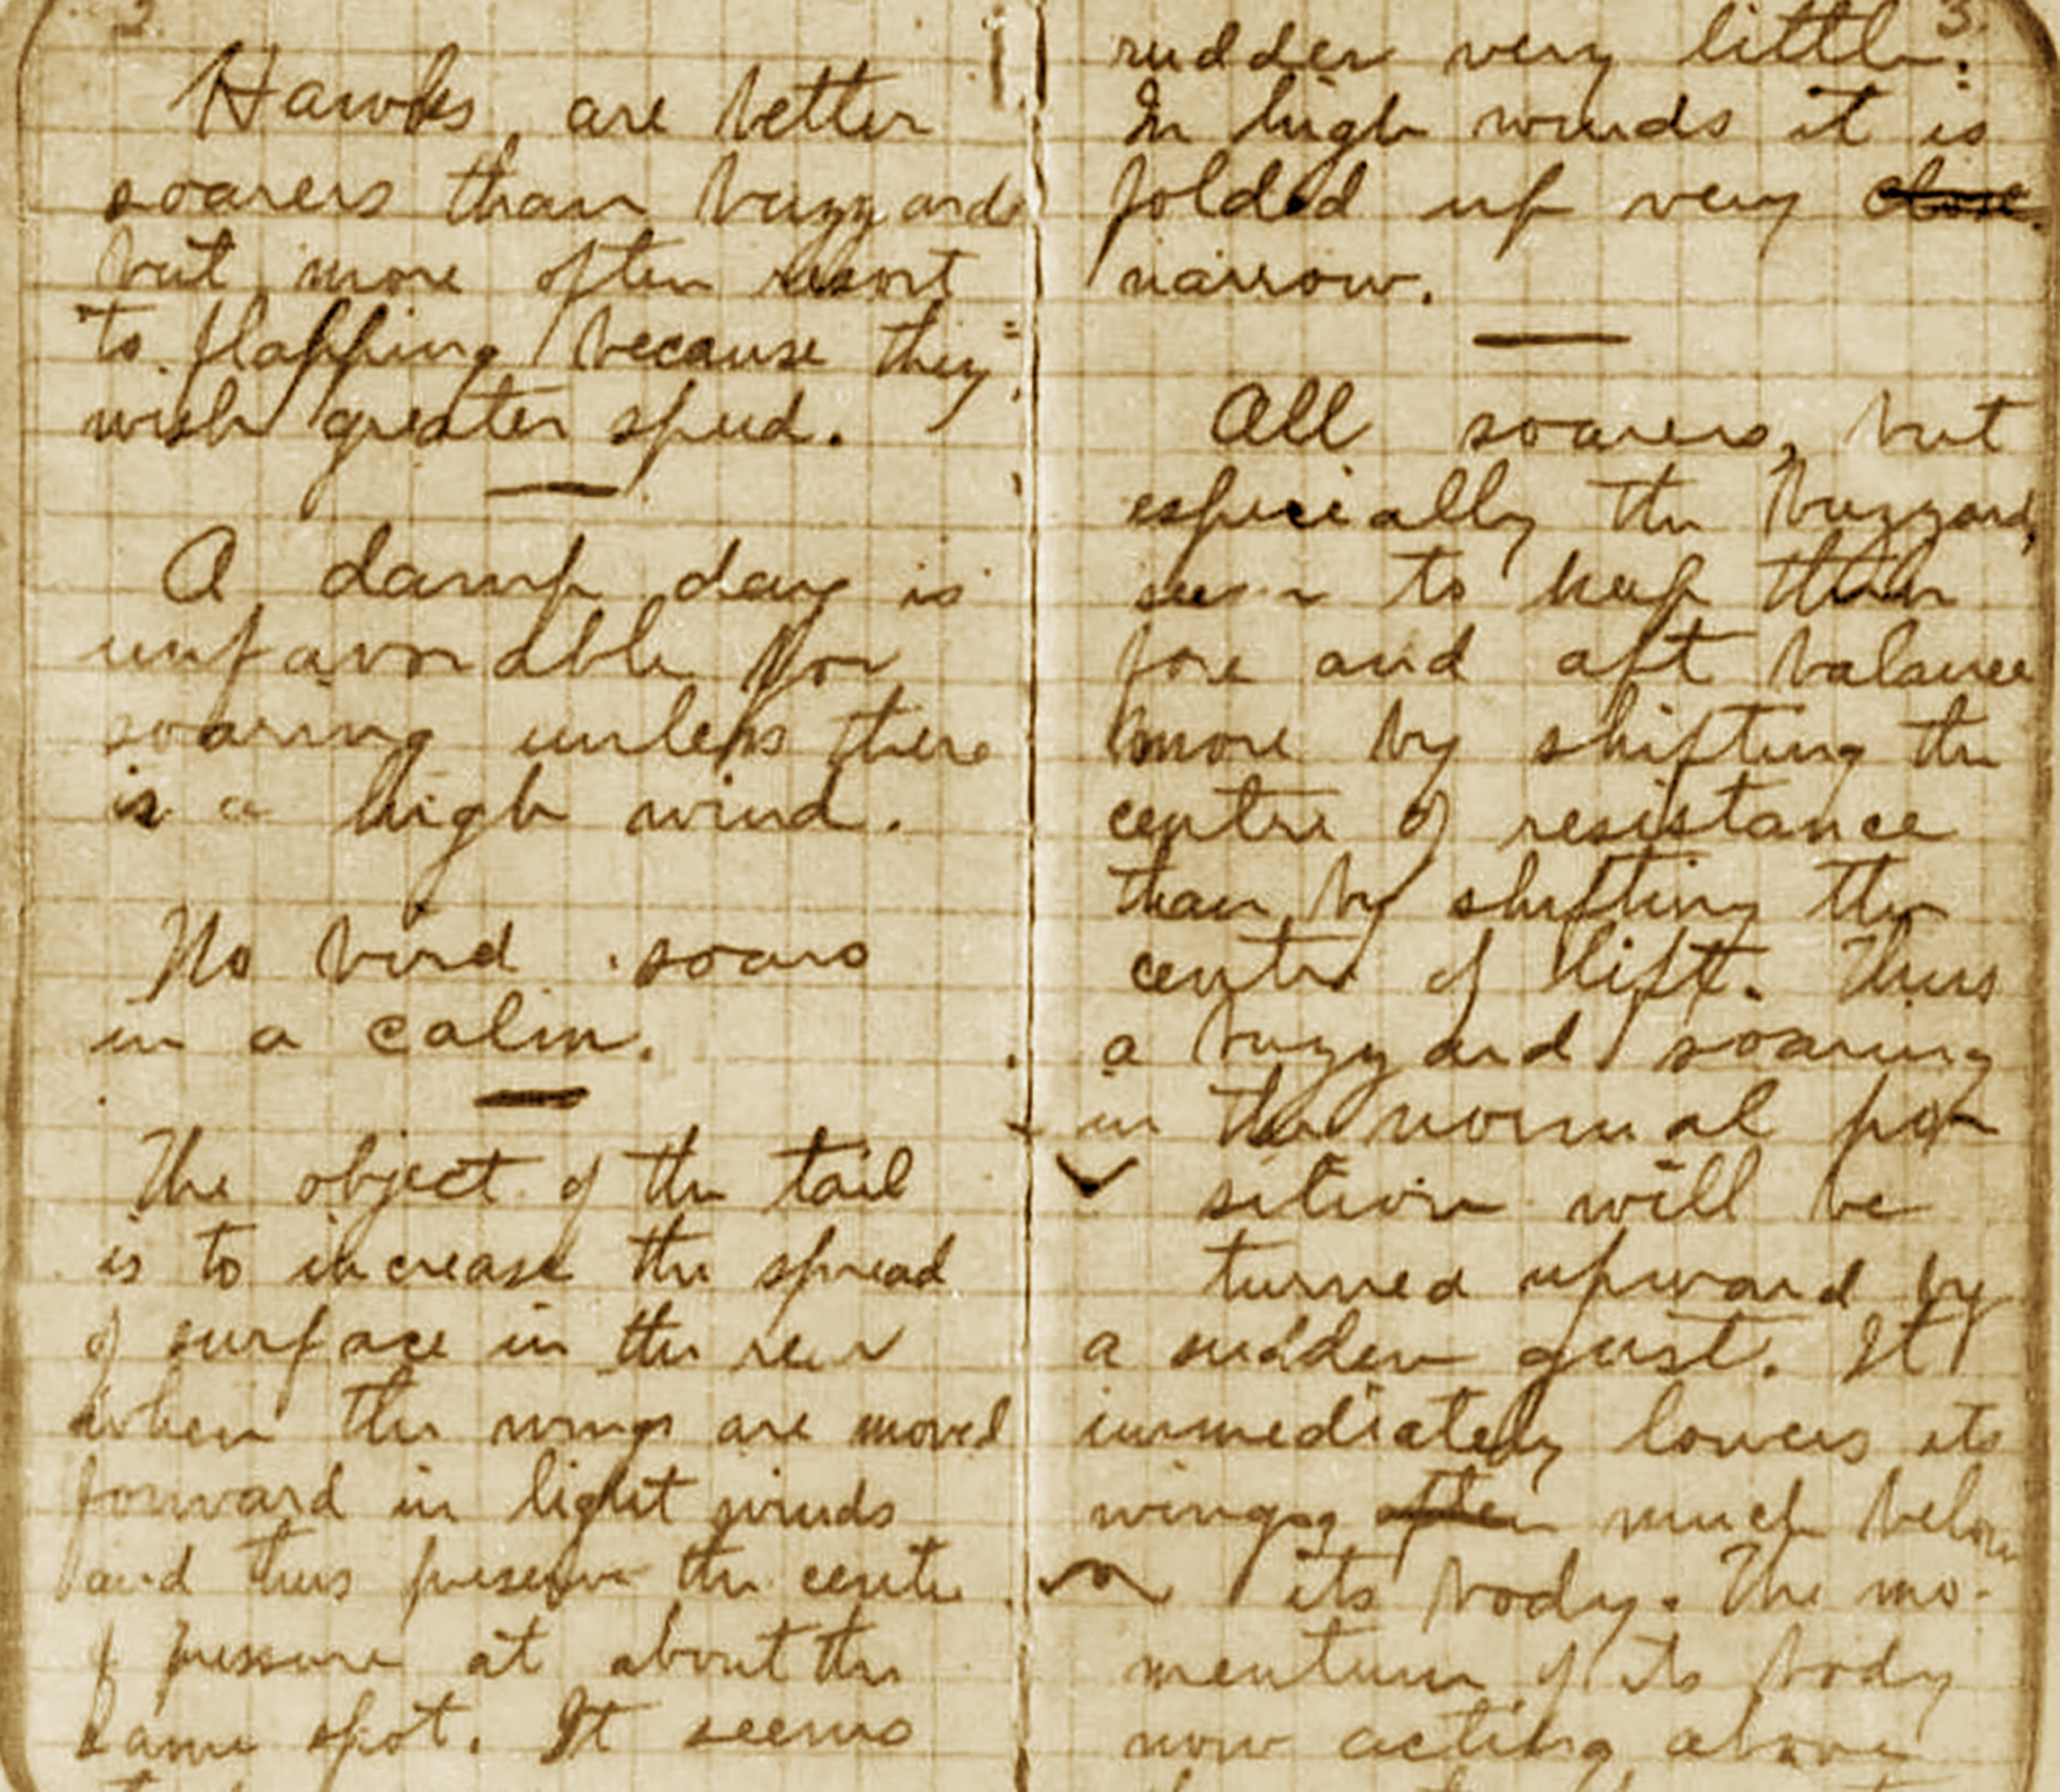 In Wilbur Wright's diary from Kitty Hawk in 1900, he recorded his reflections on birds taking flight from the sounds. Photo courtesy of the Library of Congress.